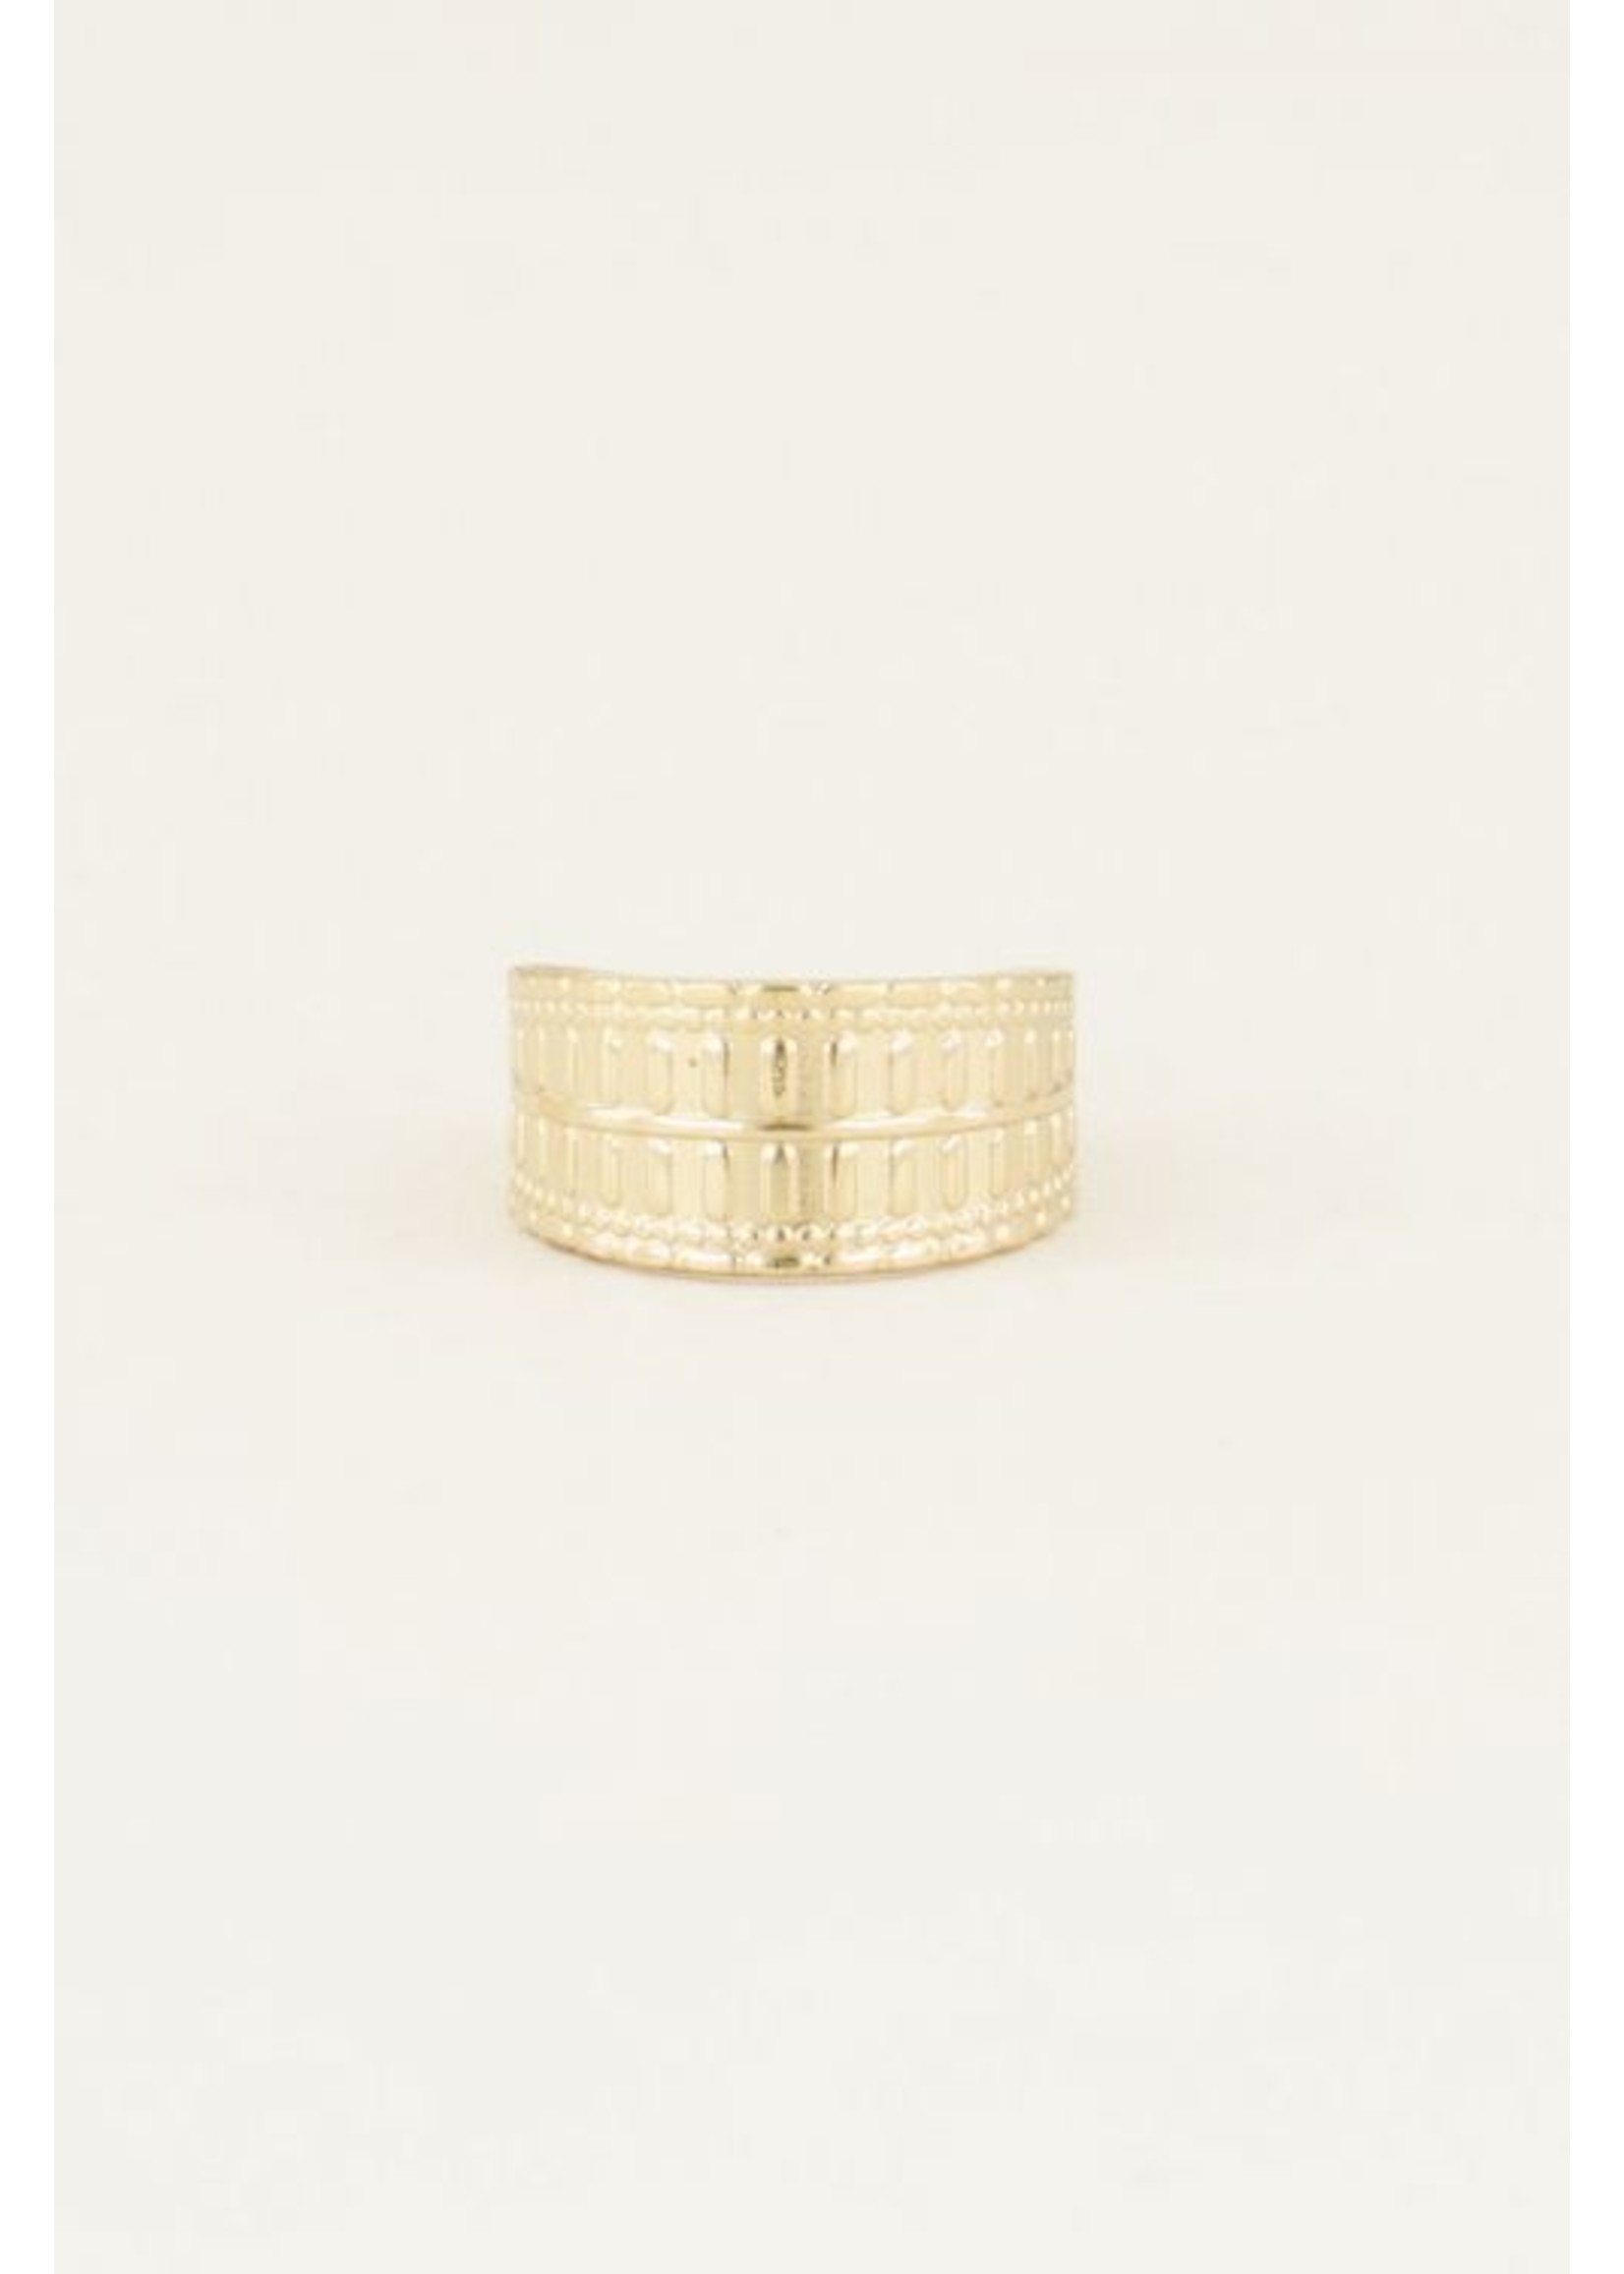 My Jewellery brede ring met patroon GOUD